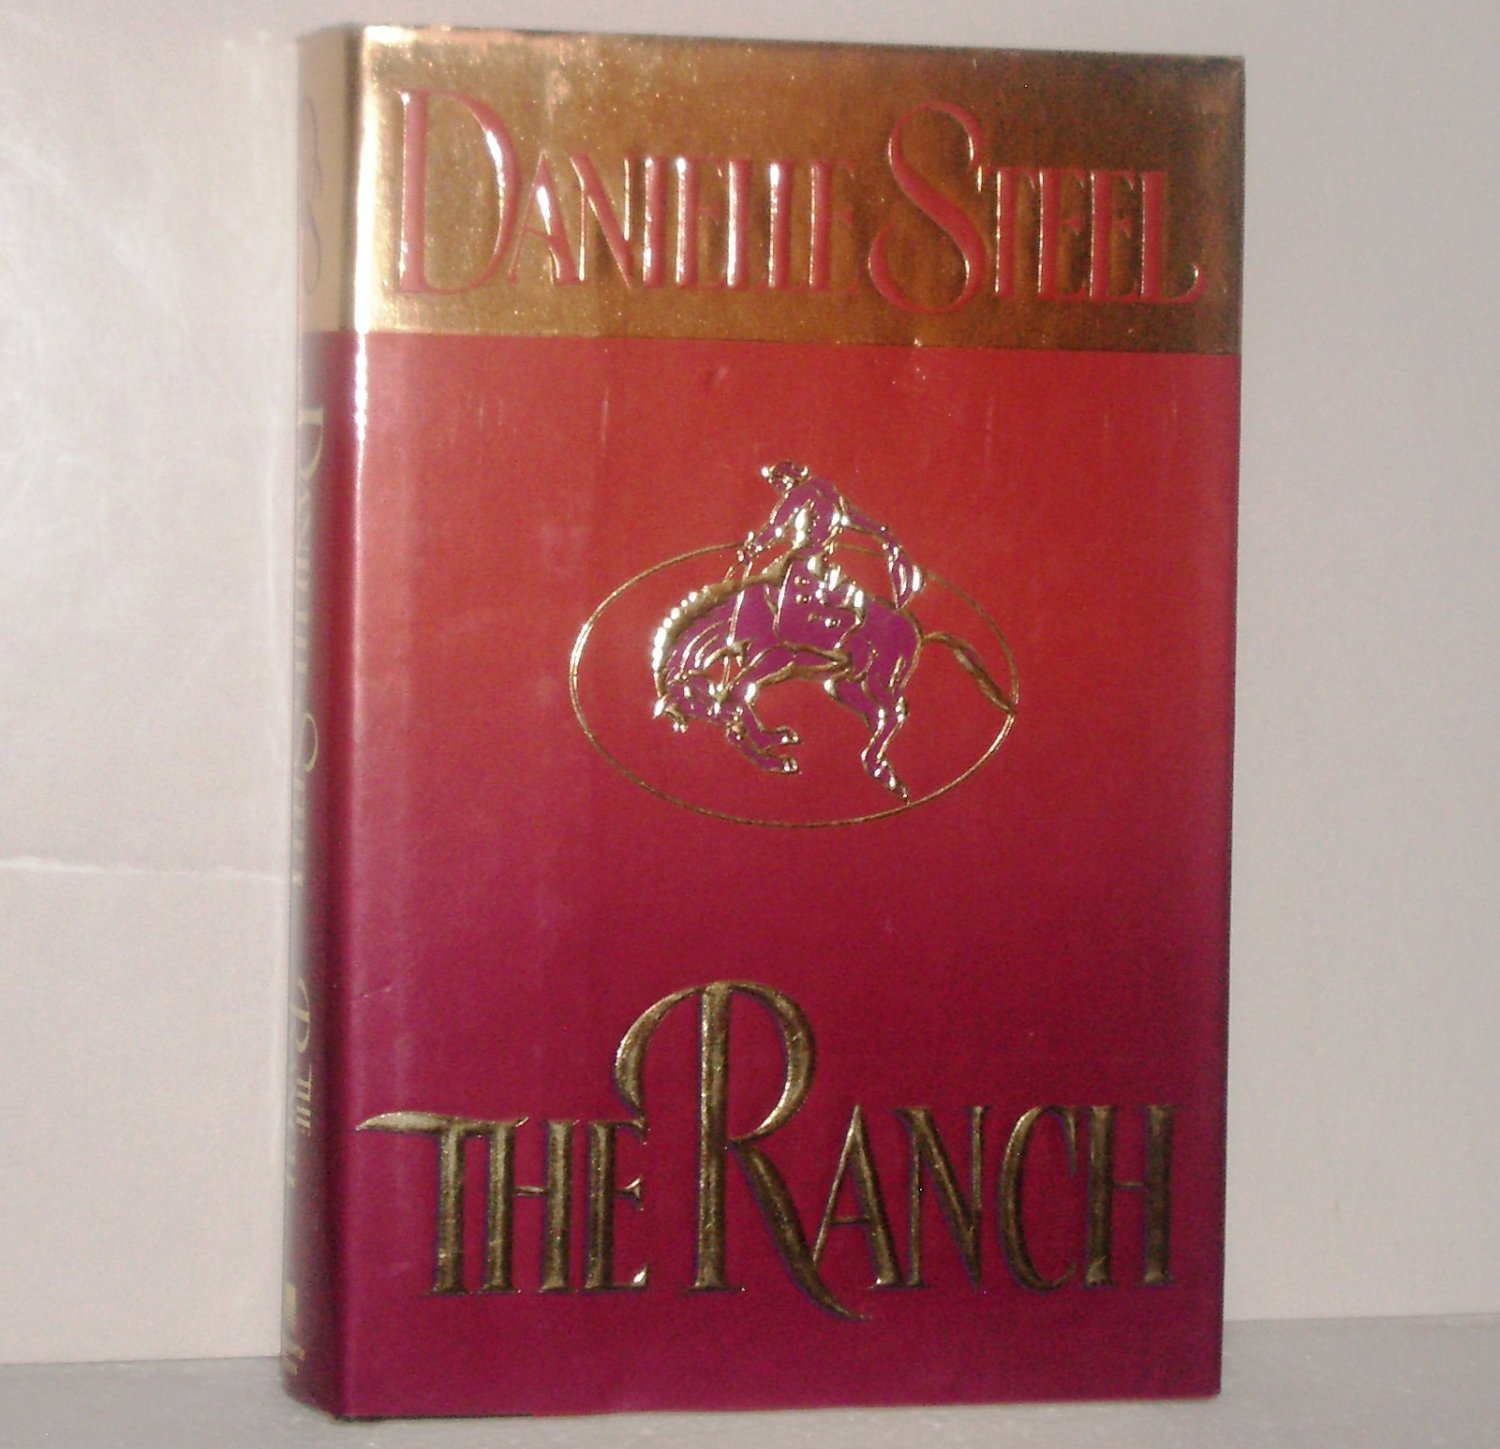 The Ranch by DANIELLE STEEL Contemporary Romance 1997 Hardcover with Dust Jacket